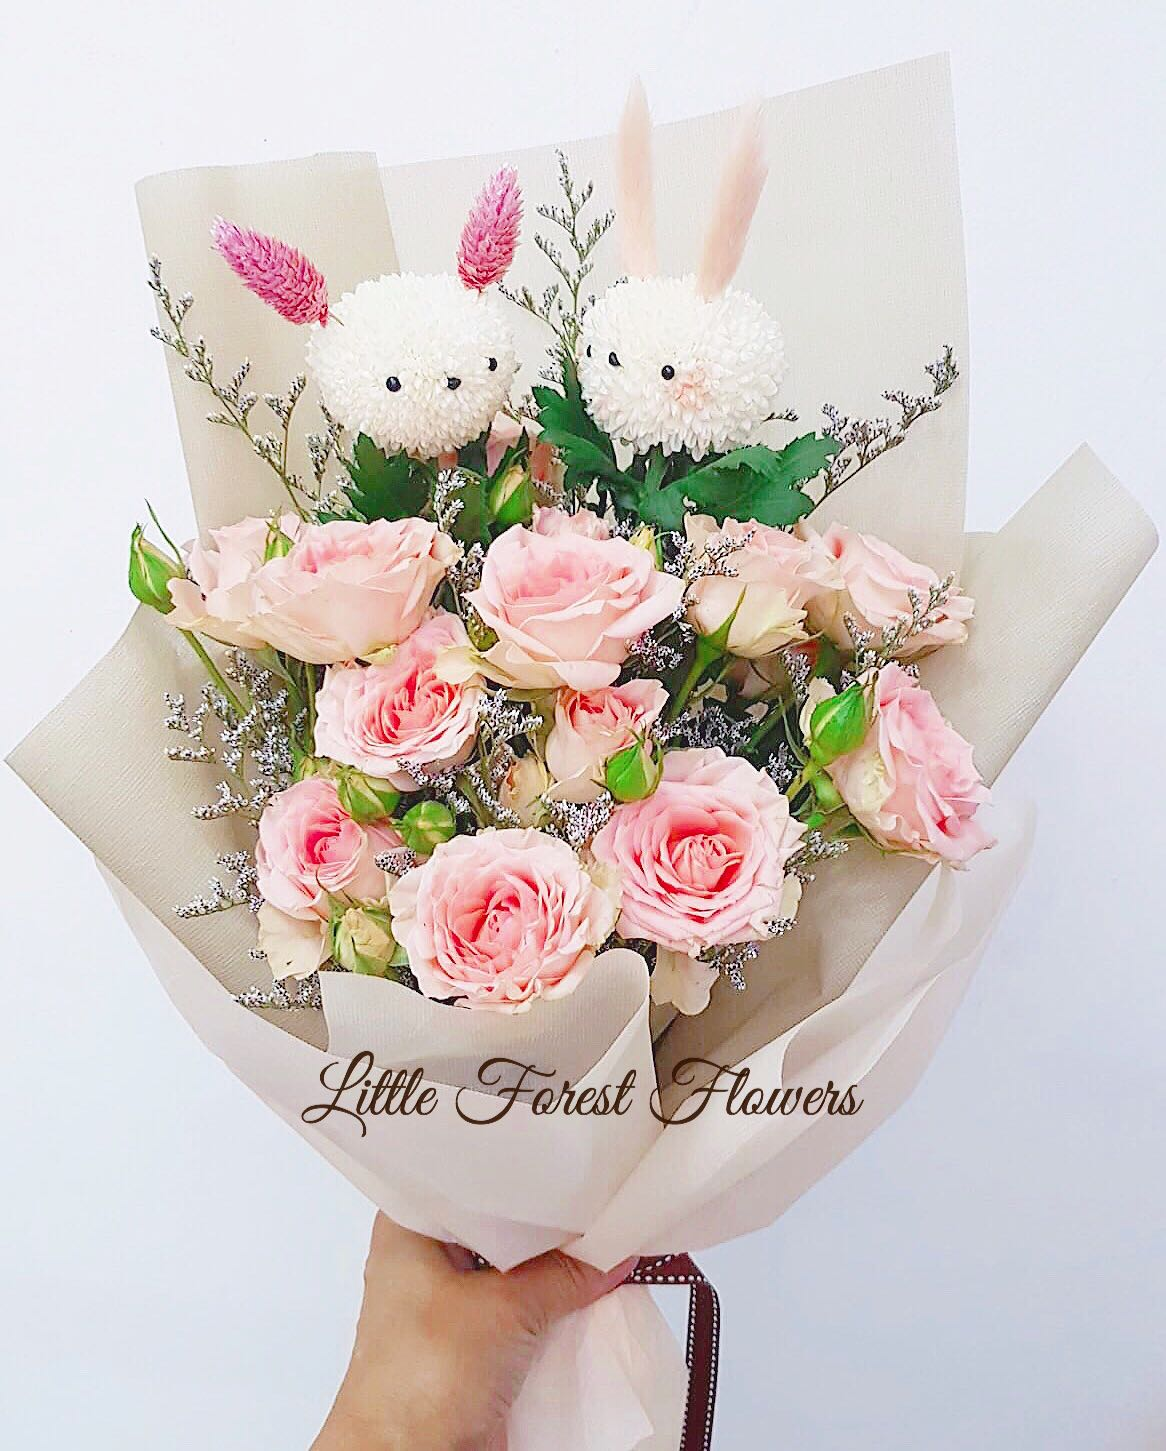 Roses & Pom Pom Bunnies Bouquet - Fresh Flower Bouquet, Gardening, Flowers & Bouquets on Carousell